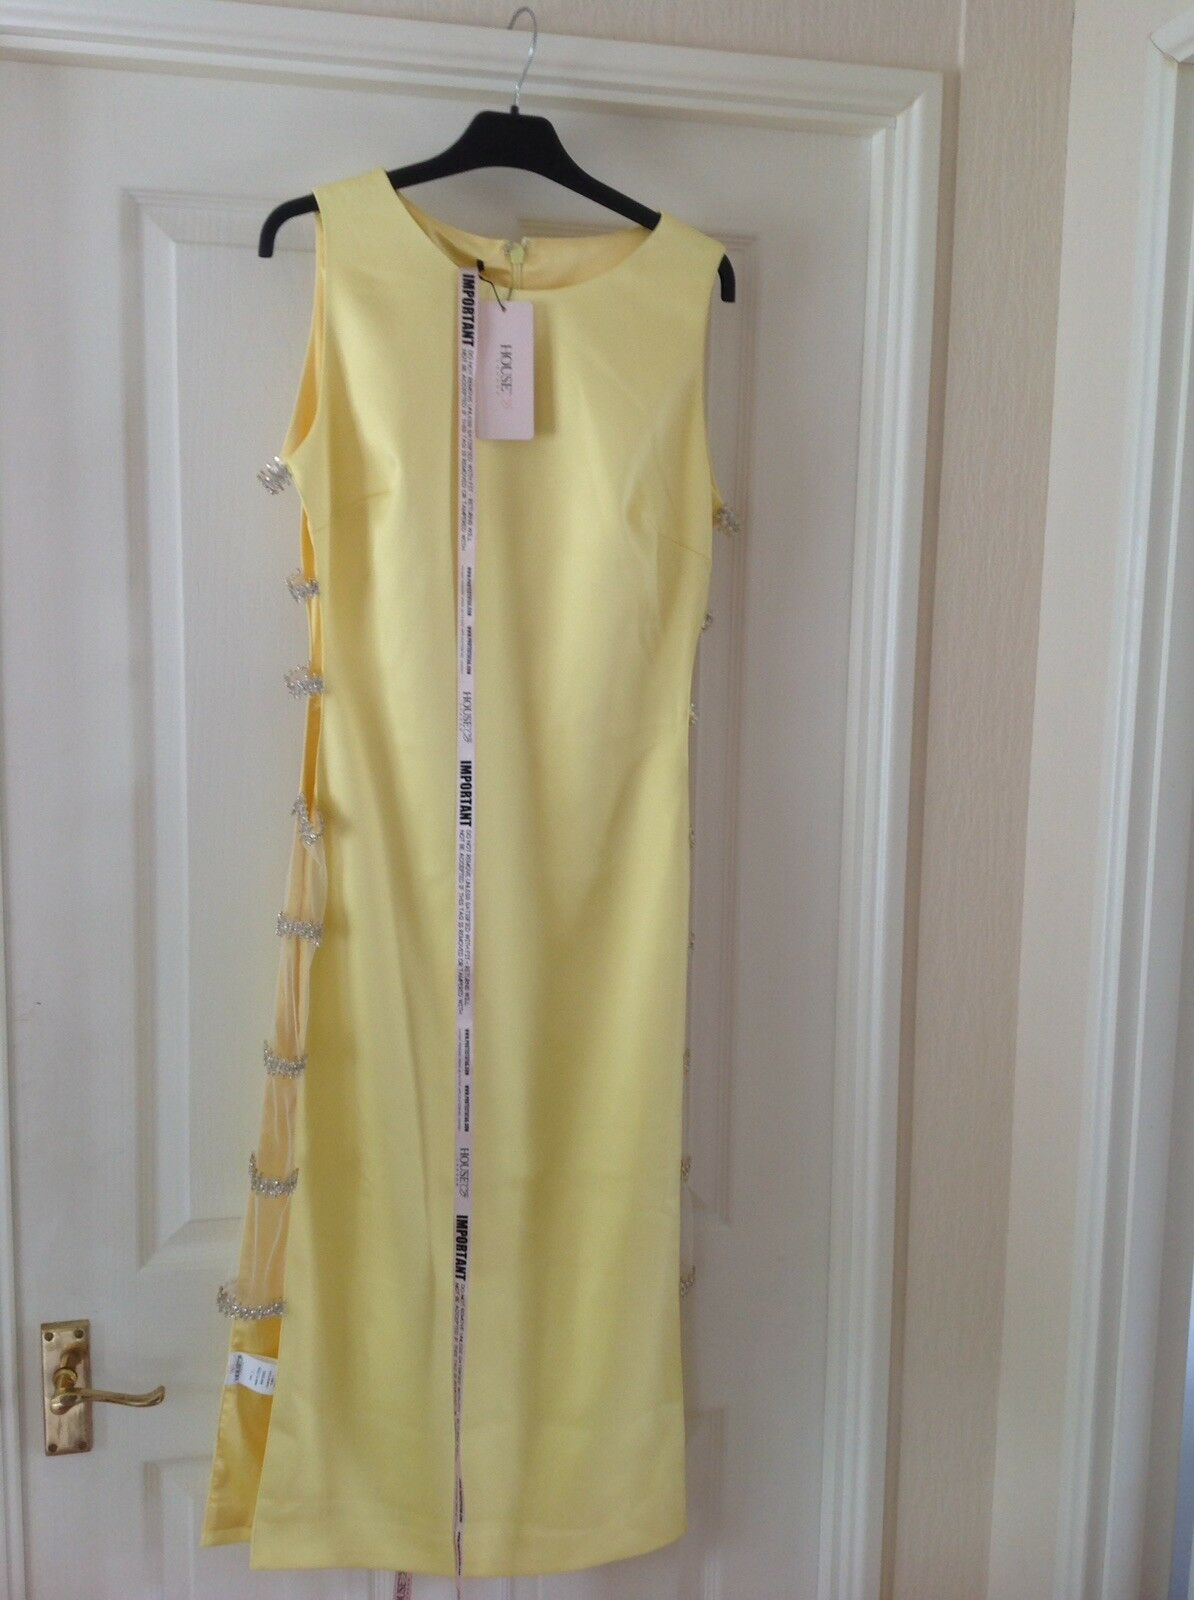 NEW Bright Yellow Satin Look Semi Fitted Dress With Open Sides Size L By HOUSE